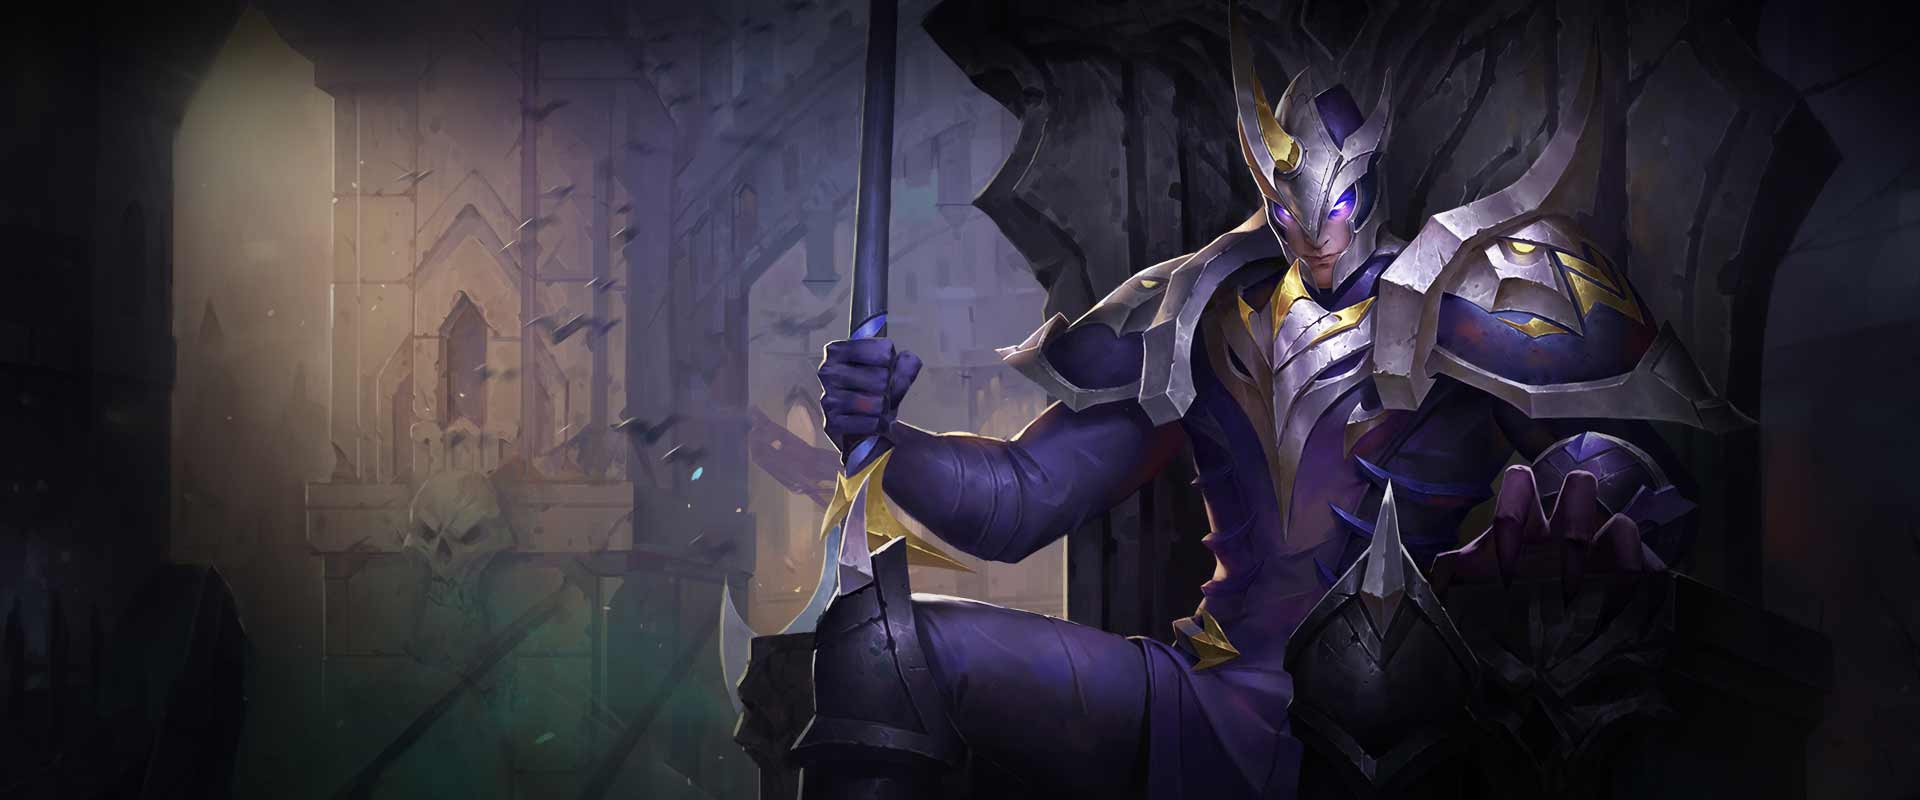 Zephys Assassin hero in Arena of Valor